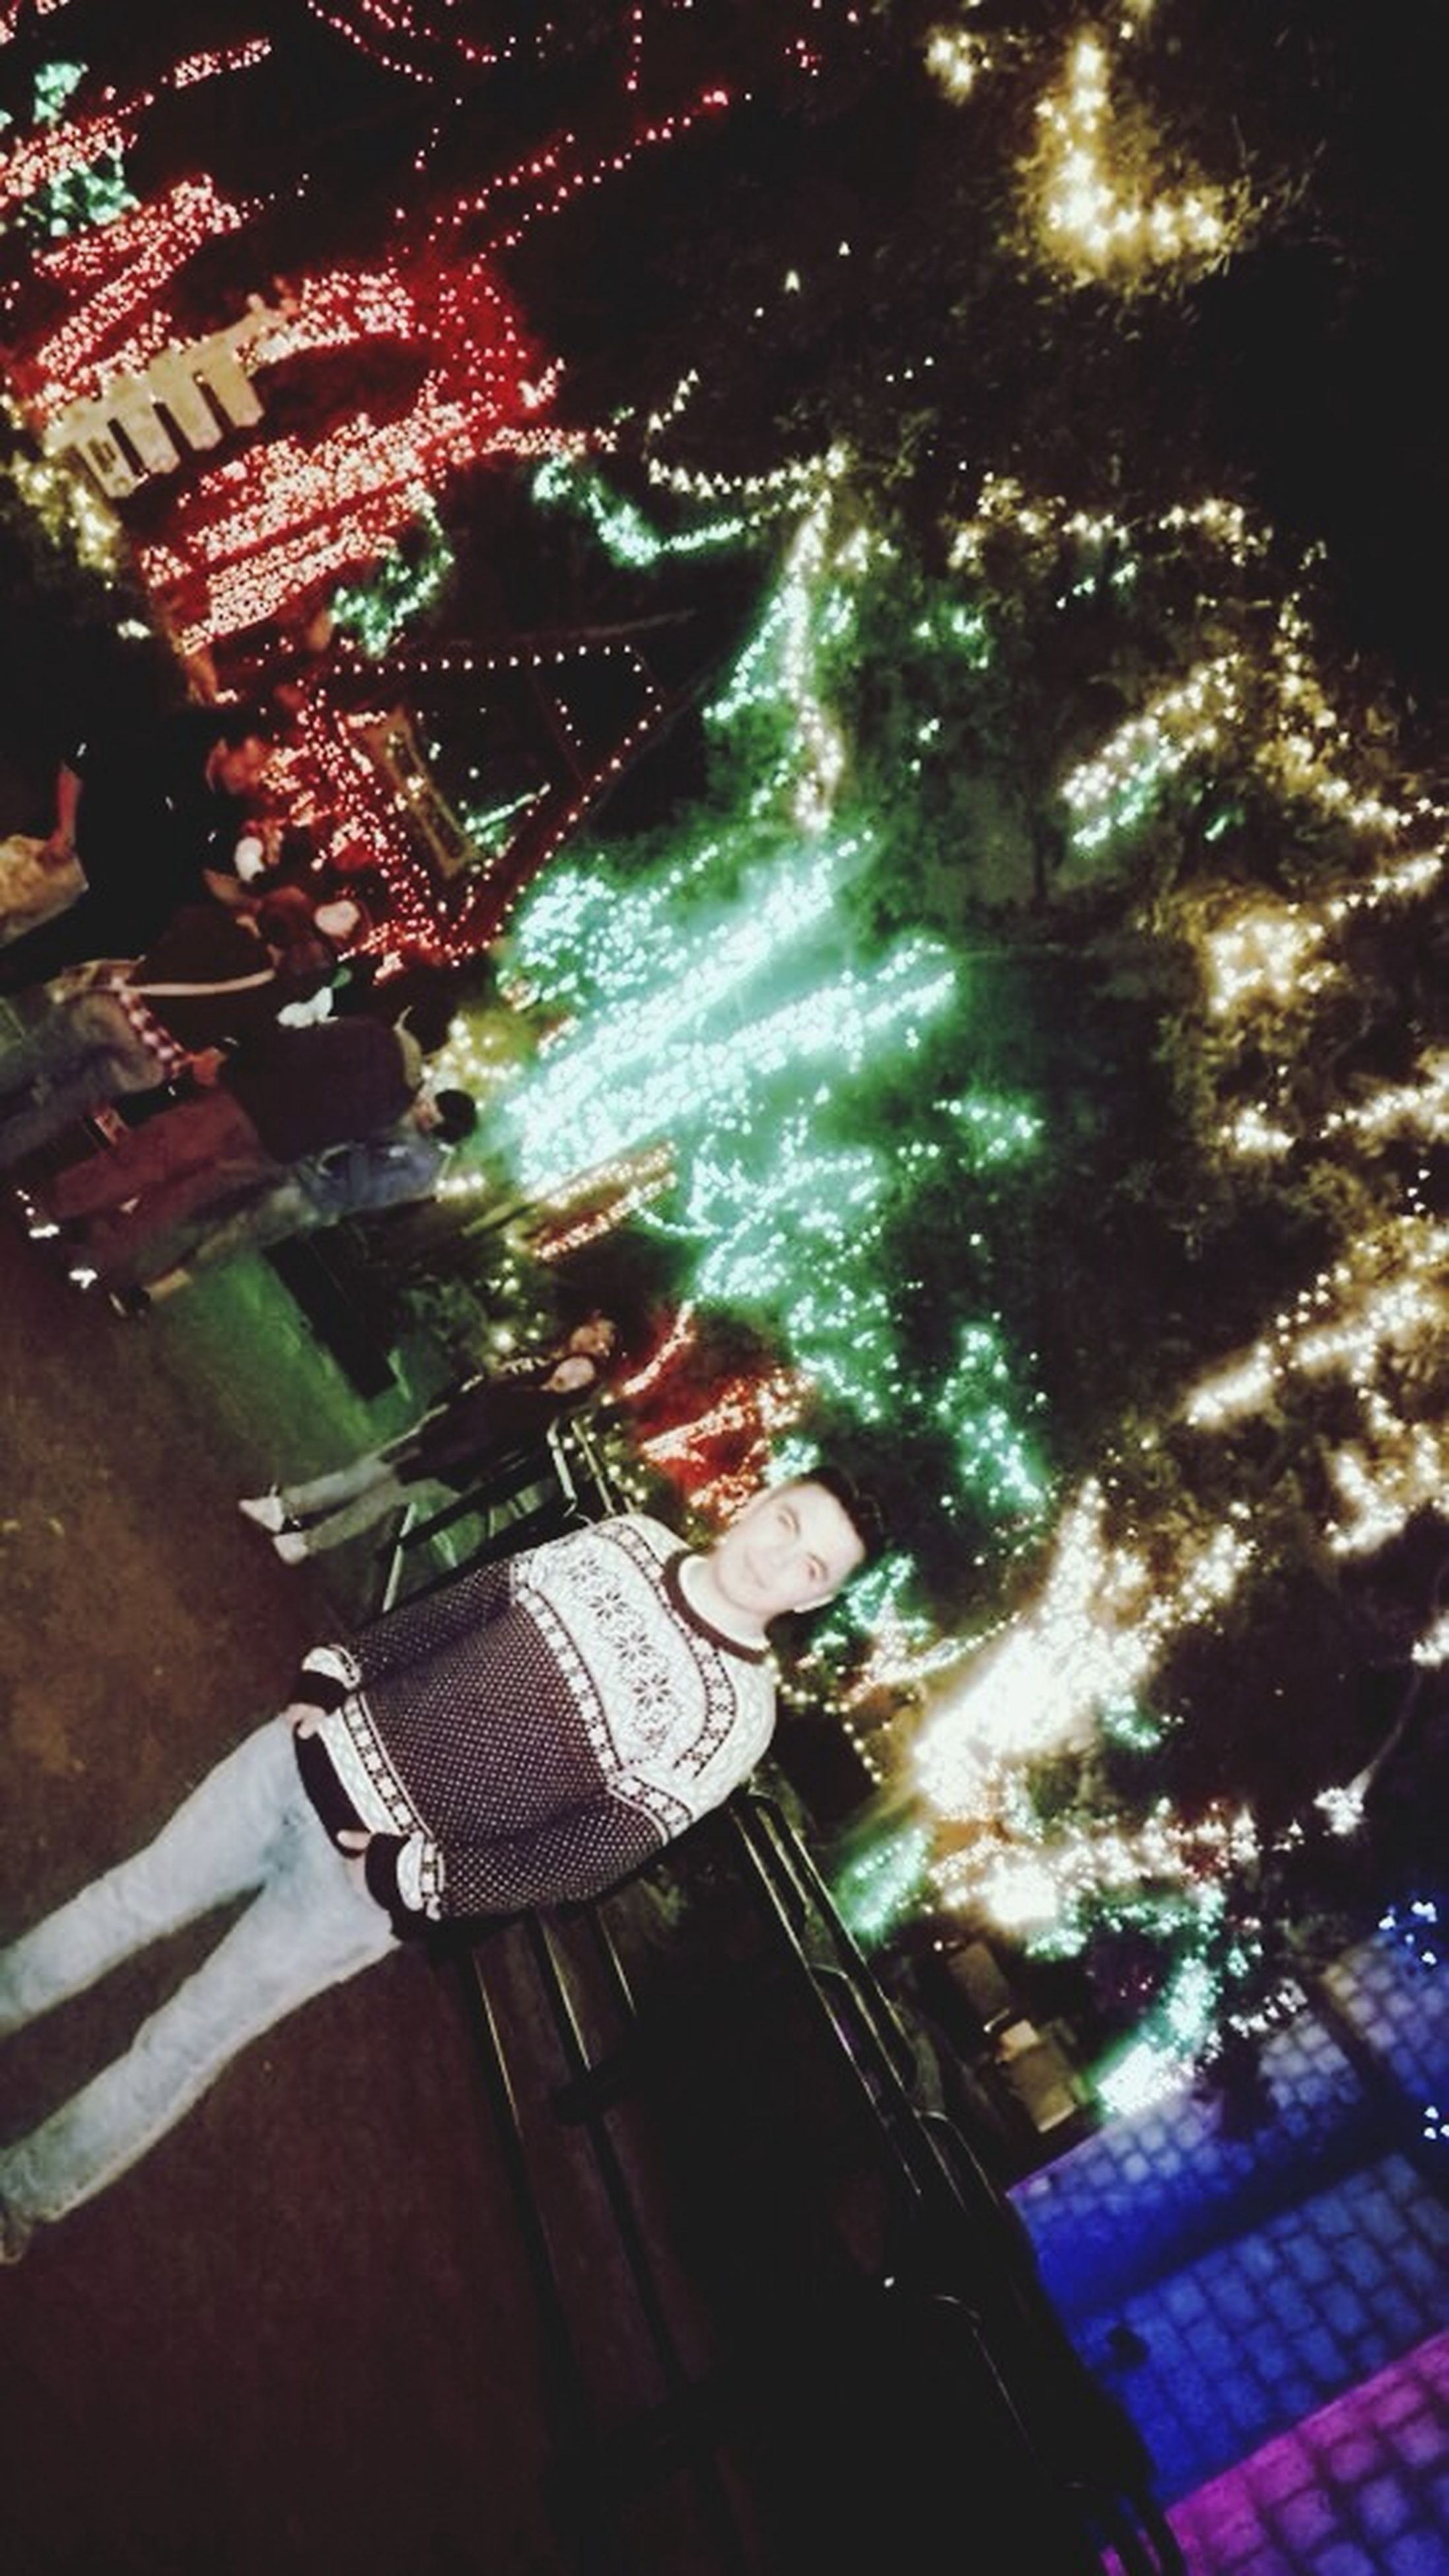 lifestyles, leisure activity, celebration, night, person, unrecognizable person, men, illuminated, high angle view, holding, part of, decoration, outdoors, low section, tree, sunlight